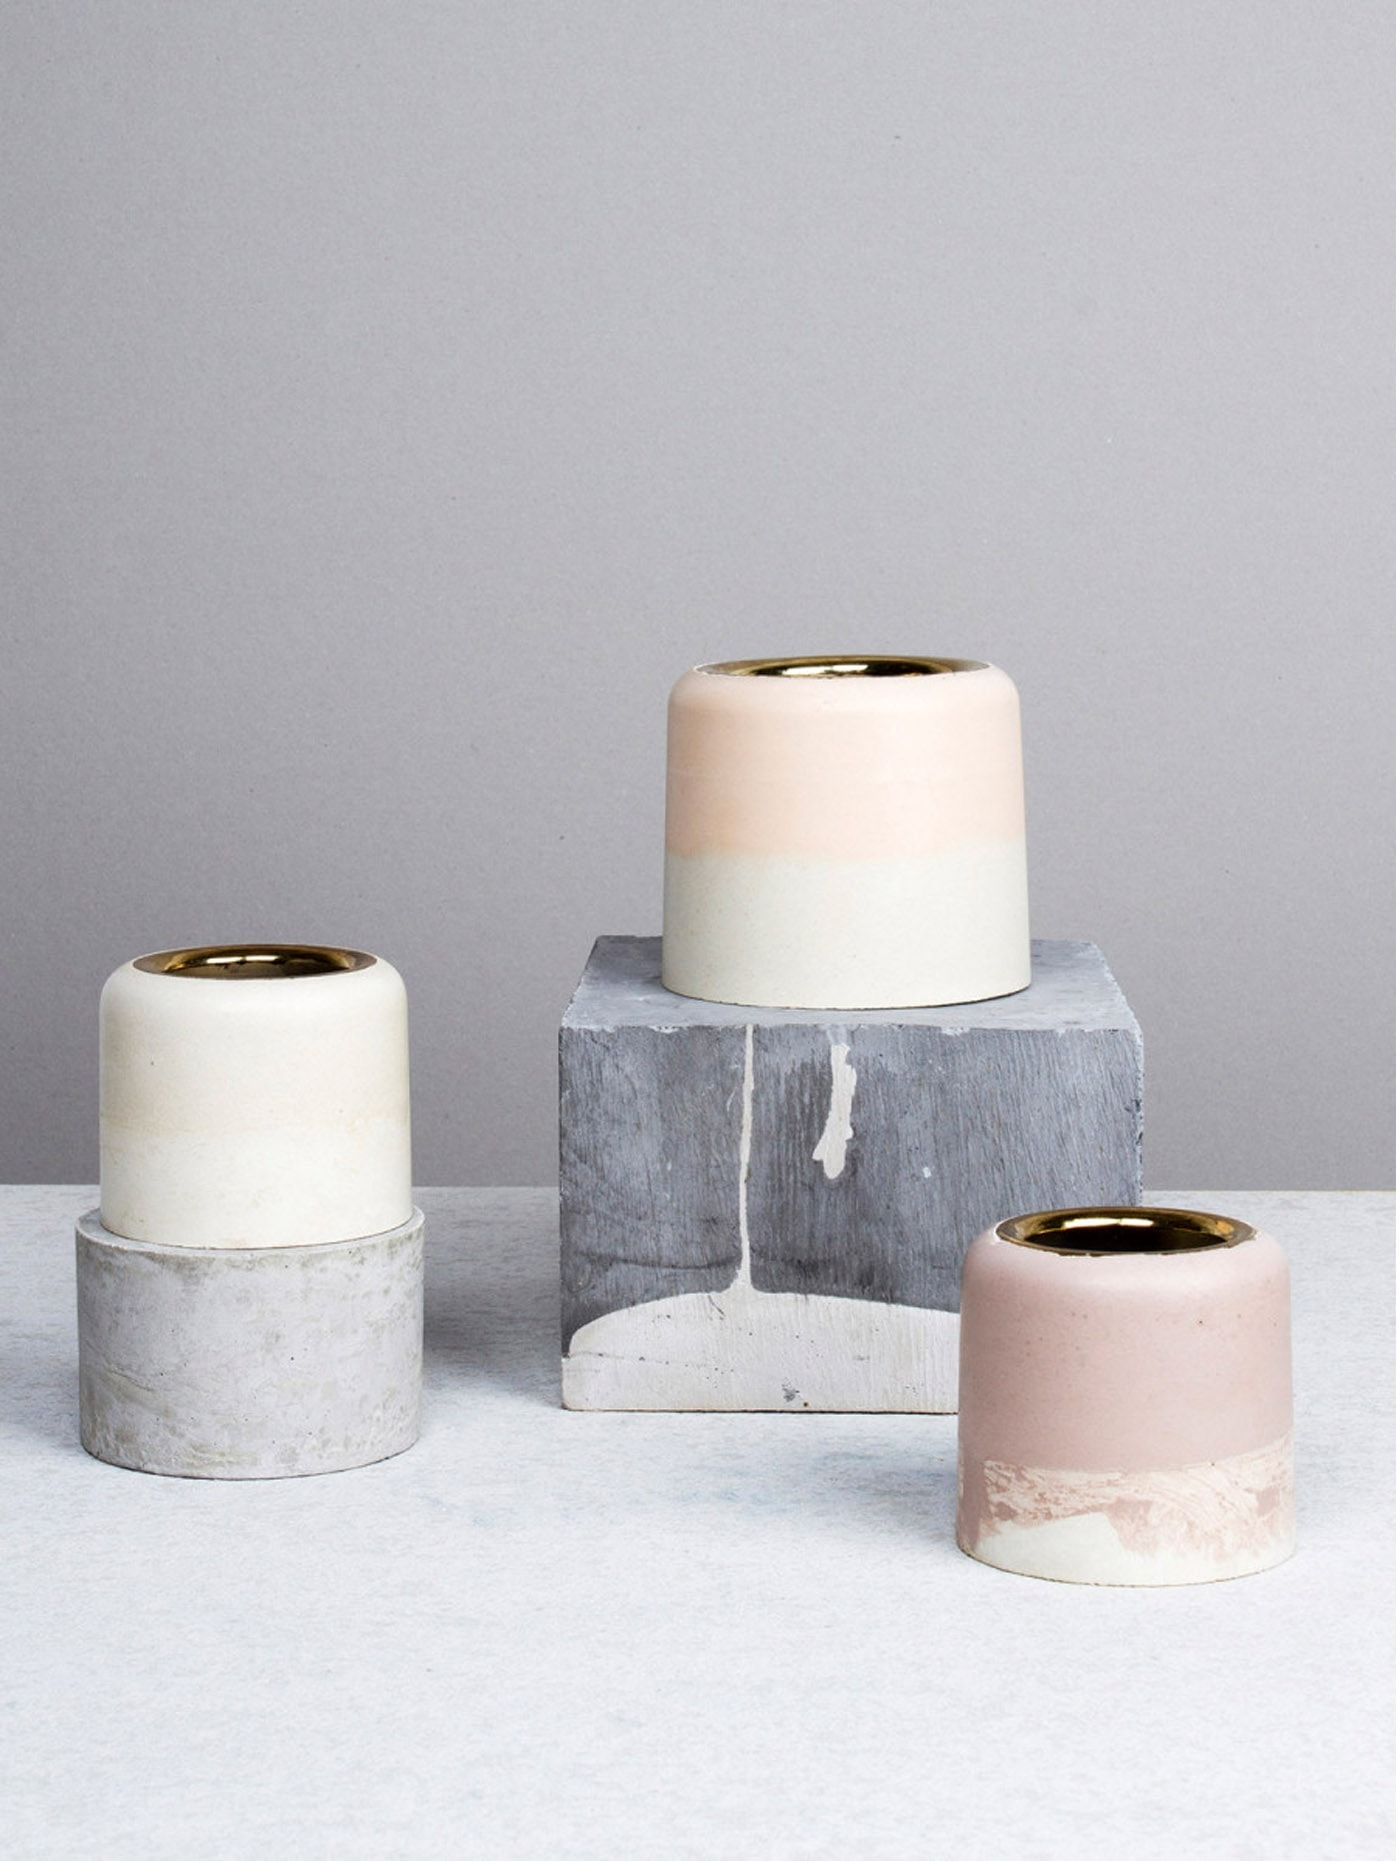 concrete vases | textures in the home | neutrals